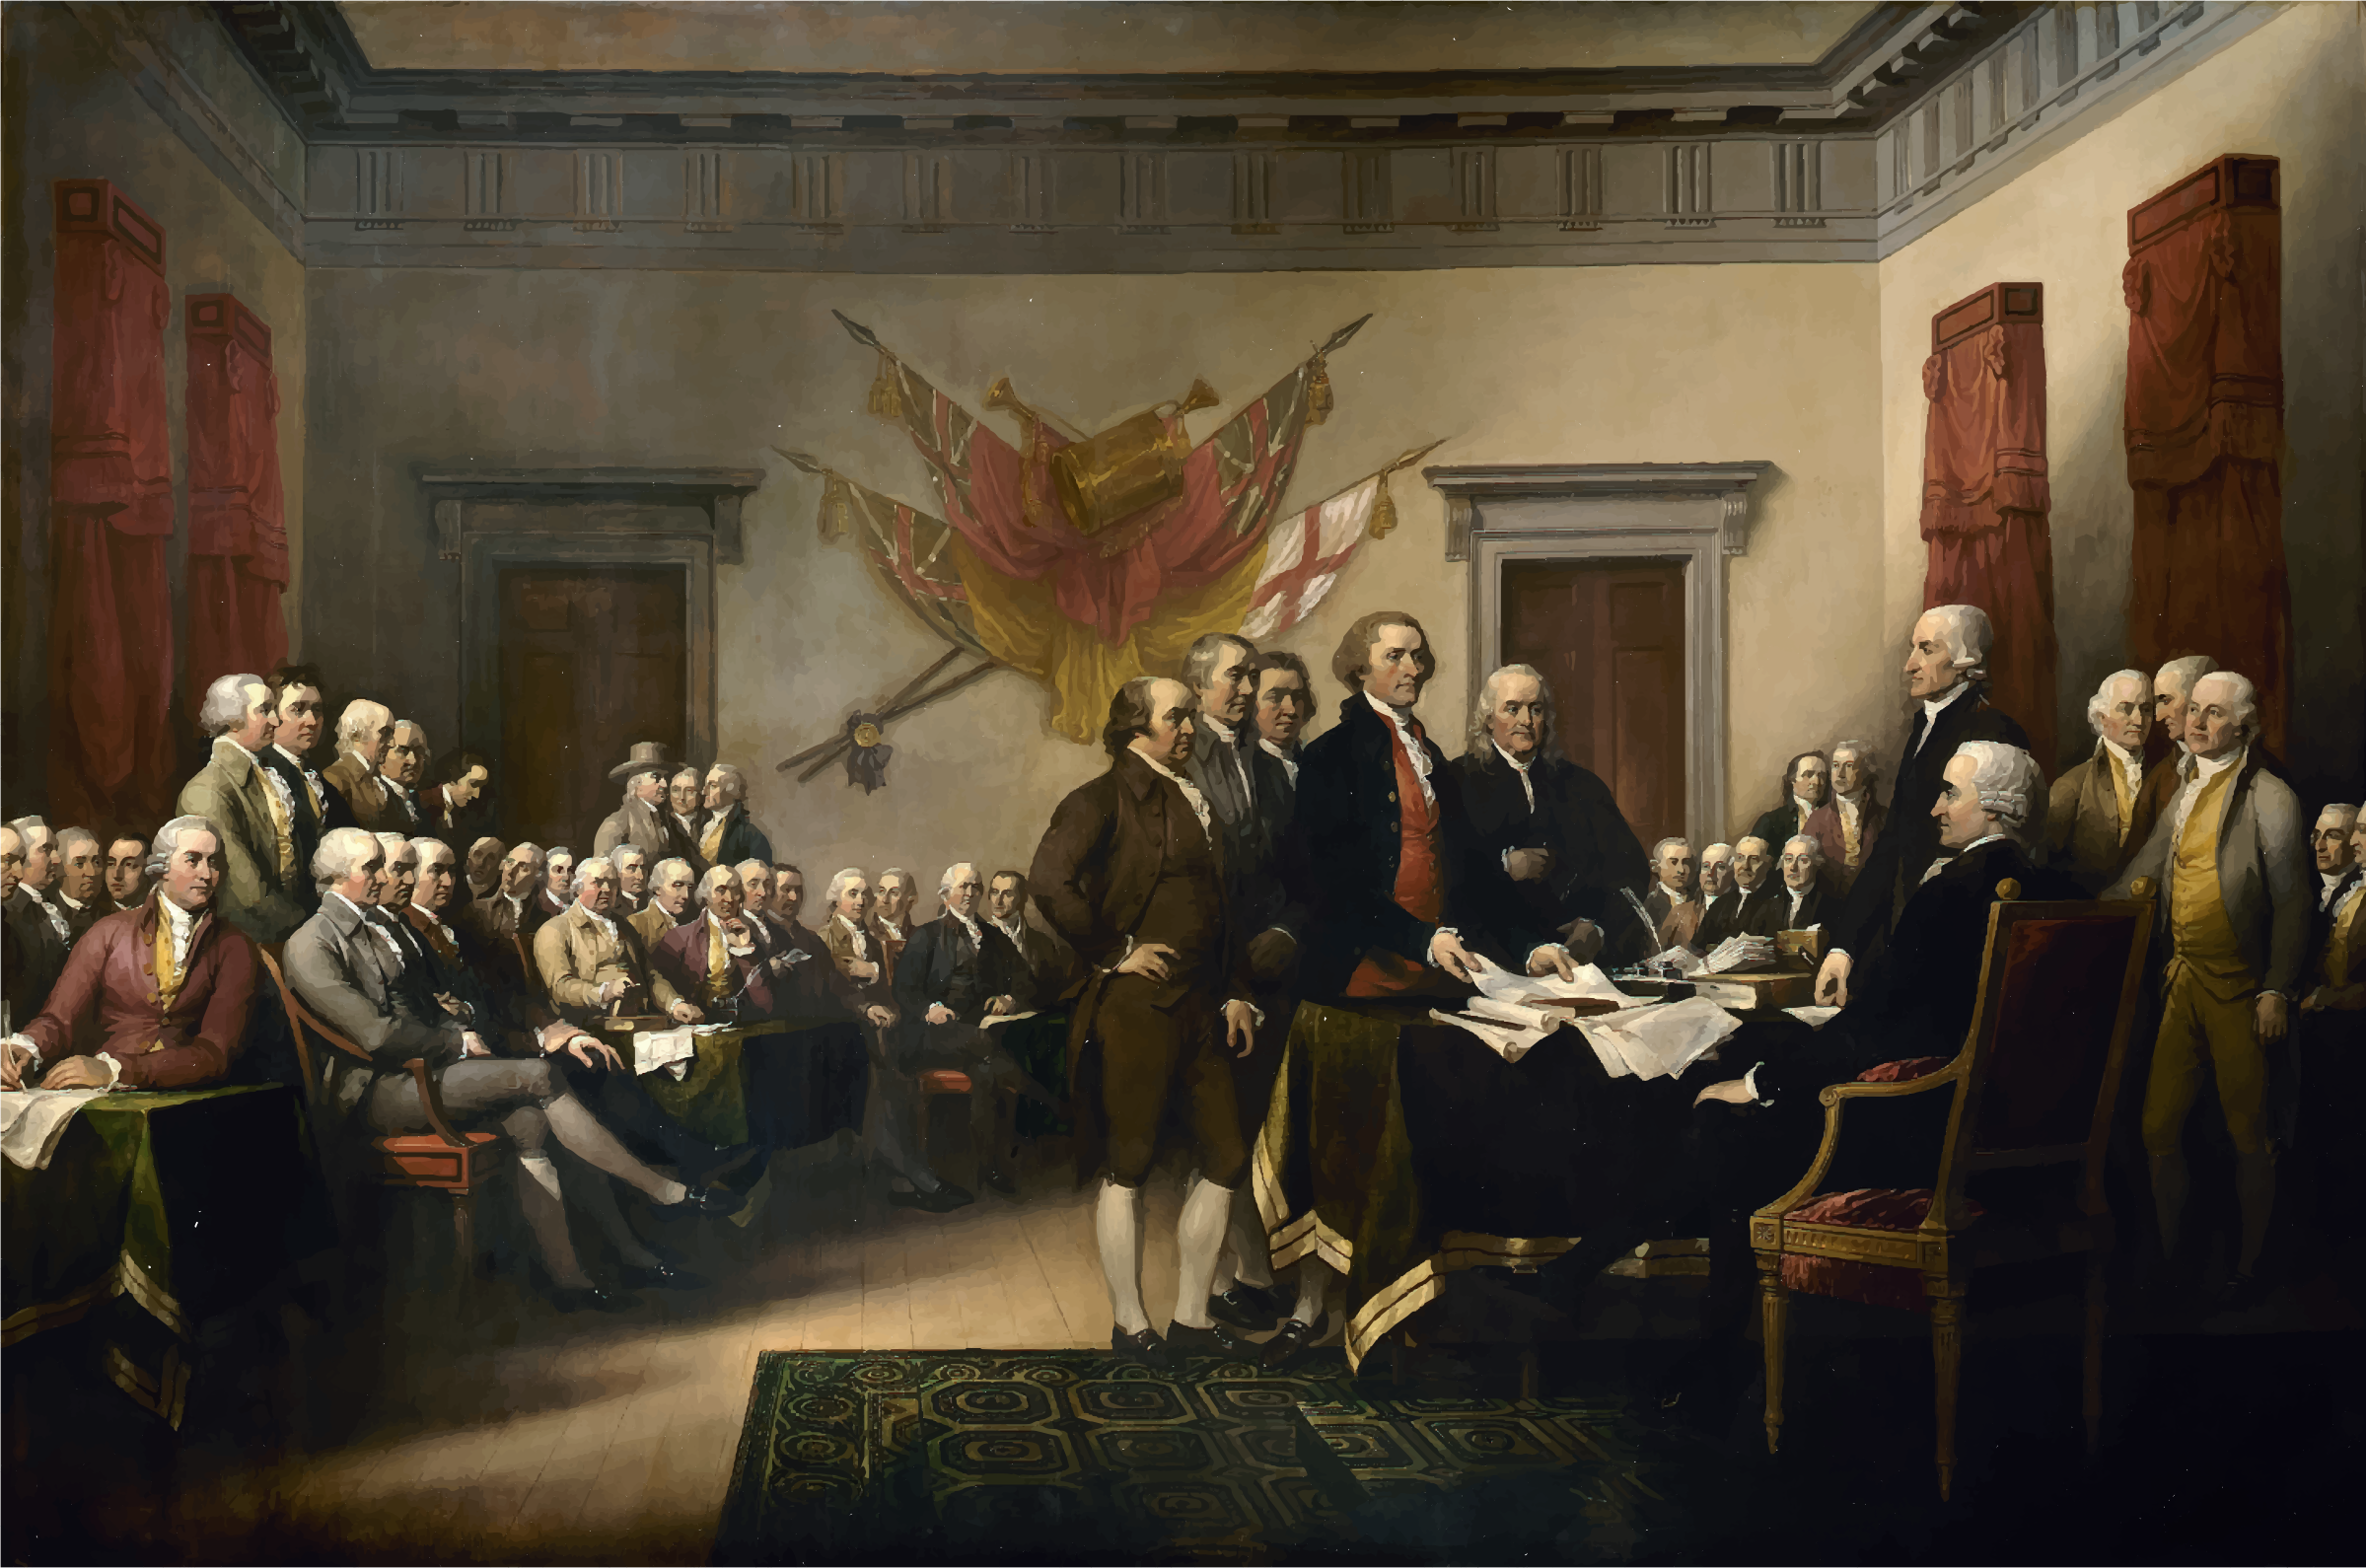 Declaration of Independence by GDJ